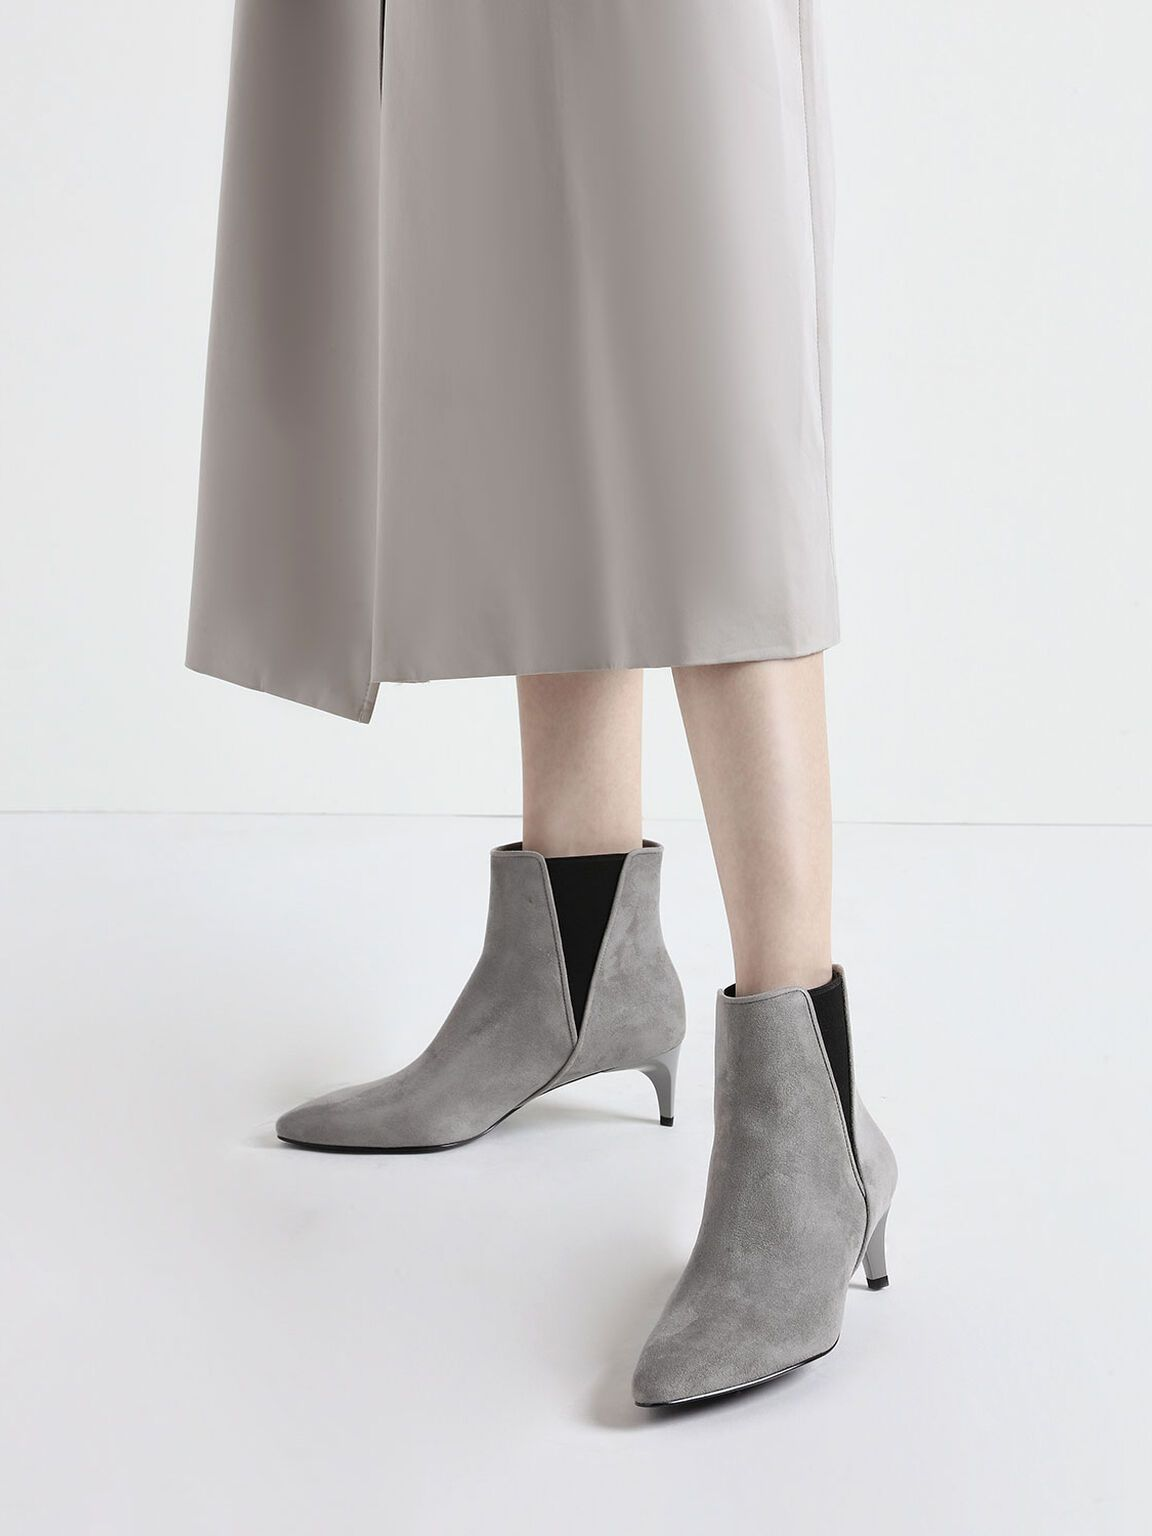 Red Kitten Heel Chelsea Boots Charles Keith Us Kitten Heels Kitten Heel Shoes Red Kitten Heels